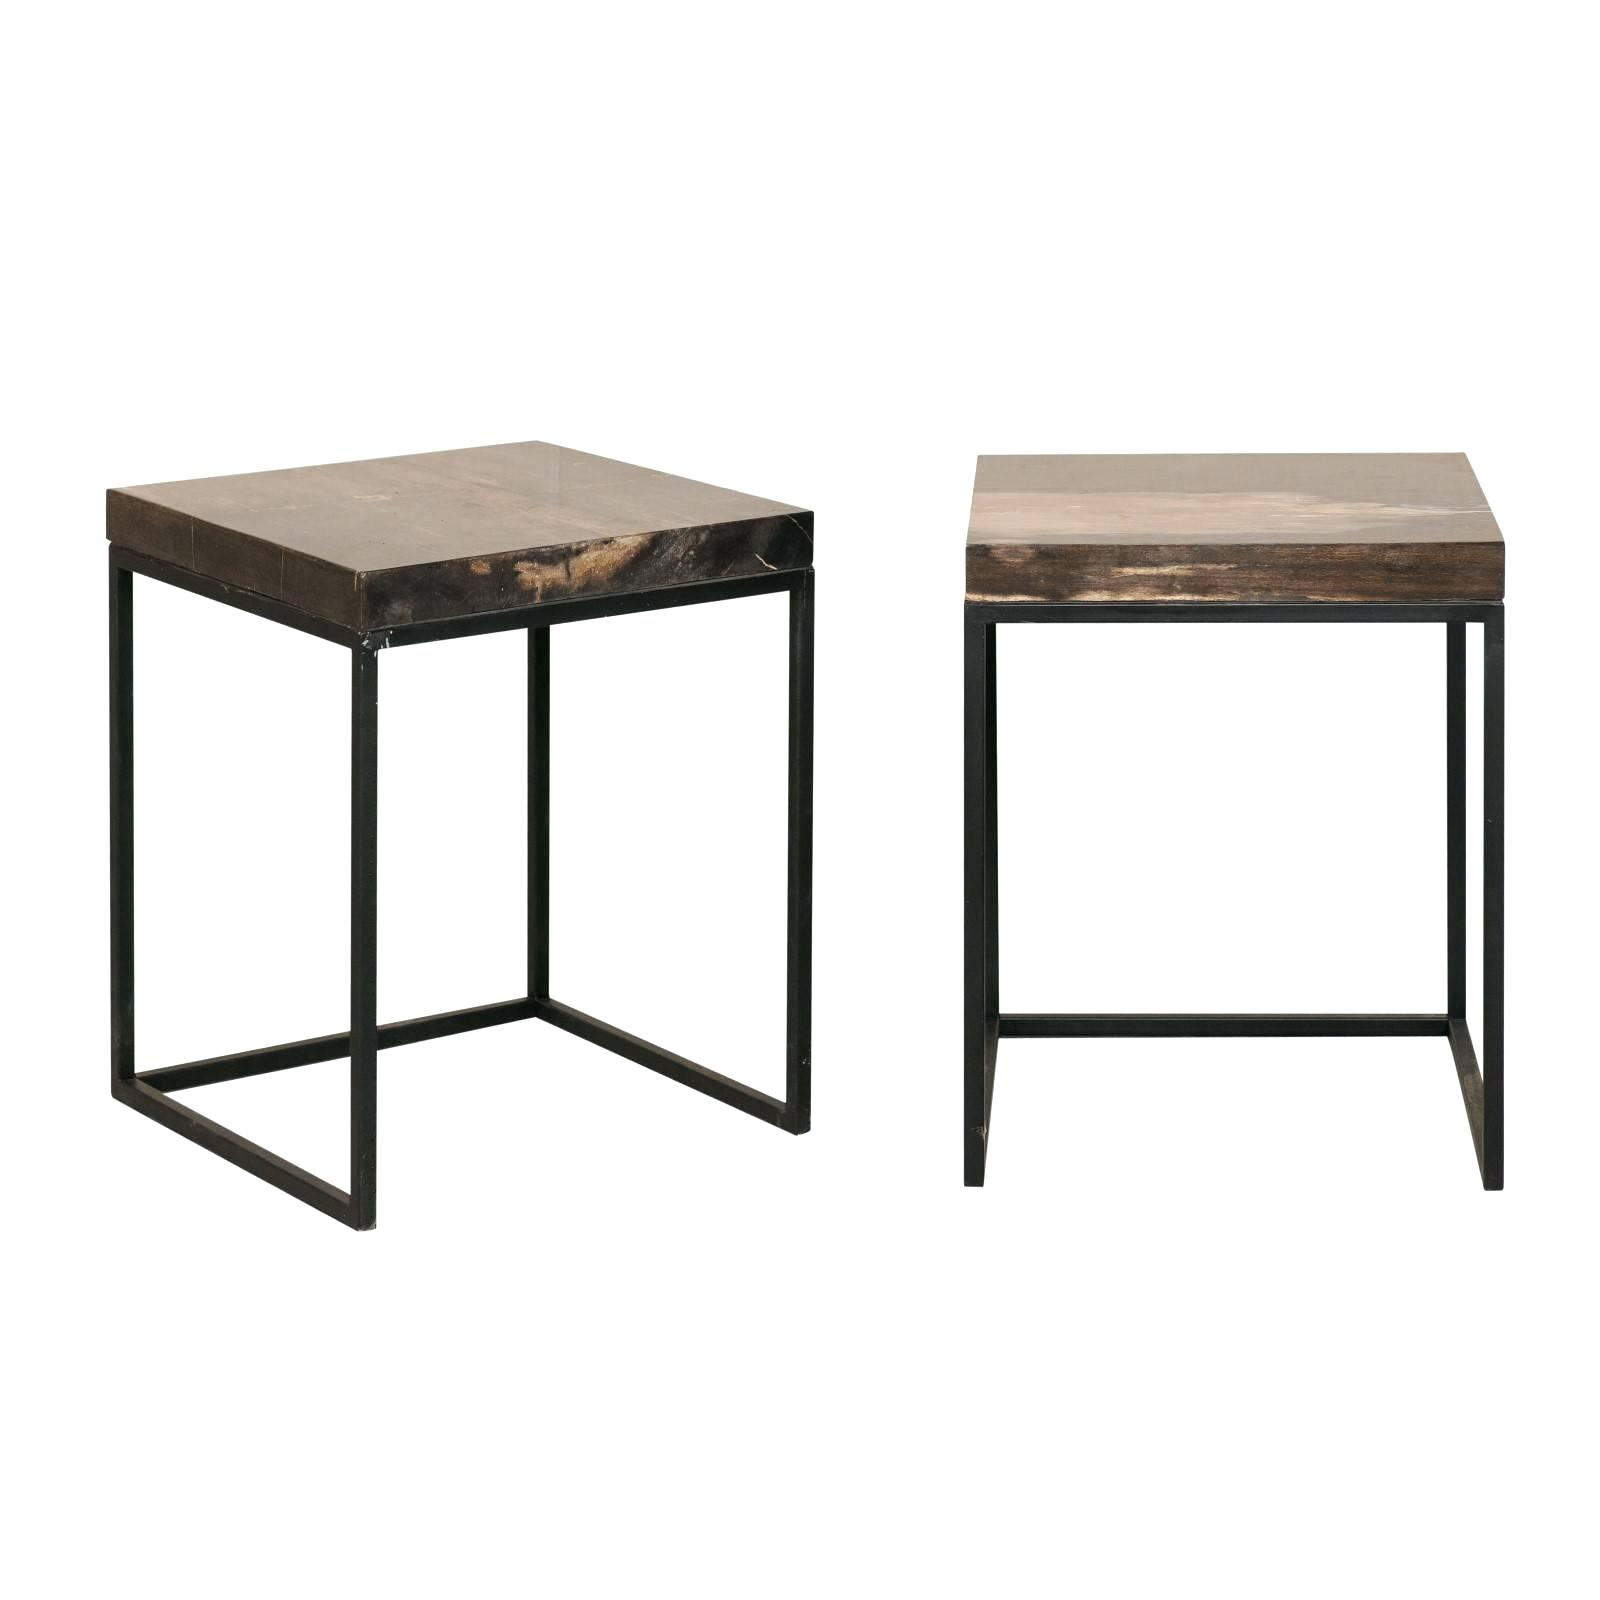 modern metal side table white outdoor tables pair style petrified wood and for maia accent with marble top furniture square thanksgiving tablecloth live decorative cabinets living